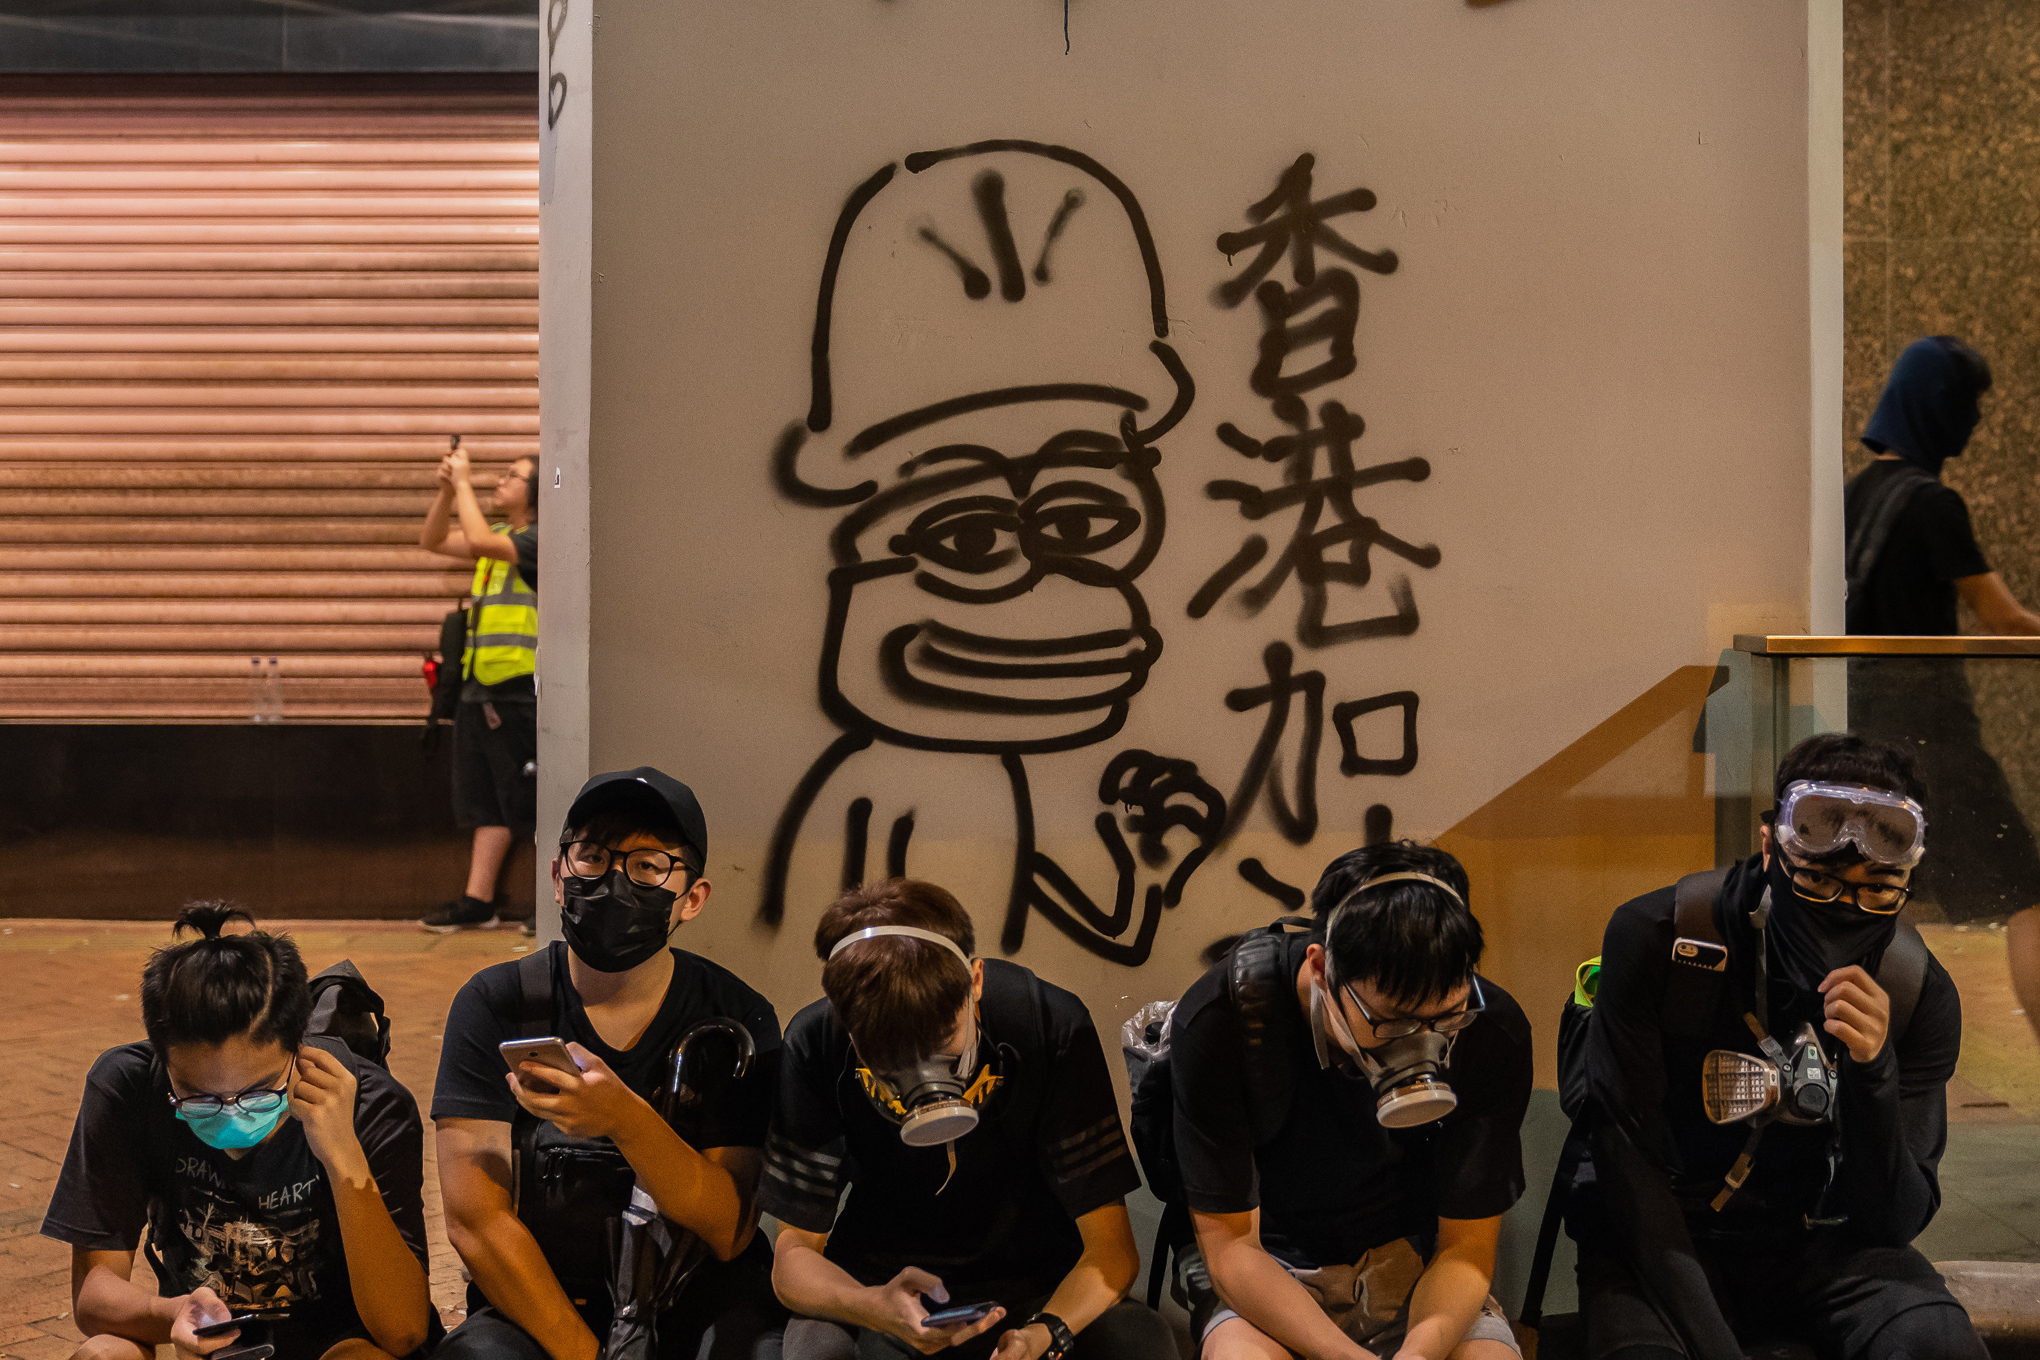 Pepe the Frog: an unlikely ally of Hong Kong protesters at the world's largest gaming tournament